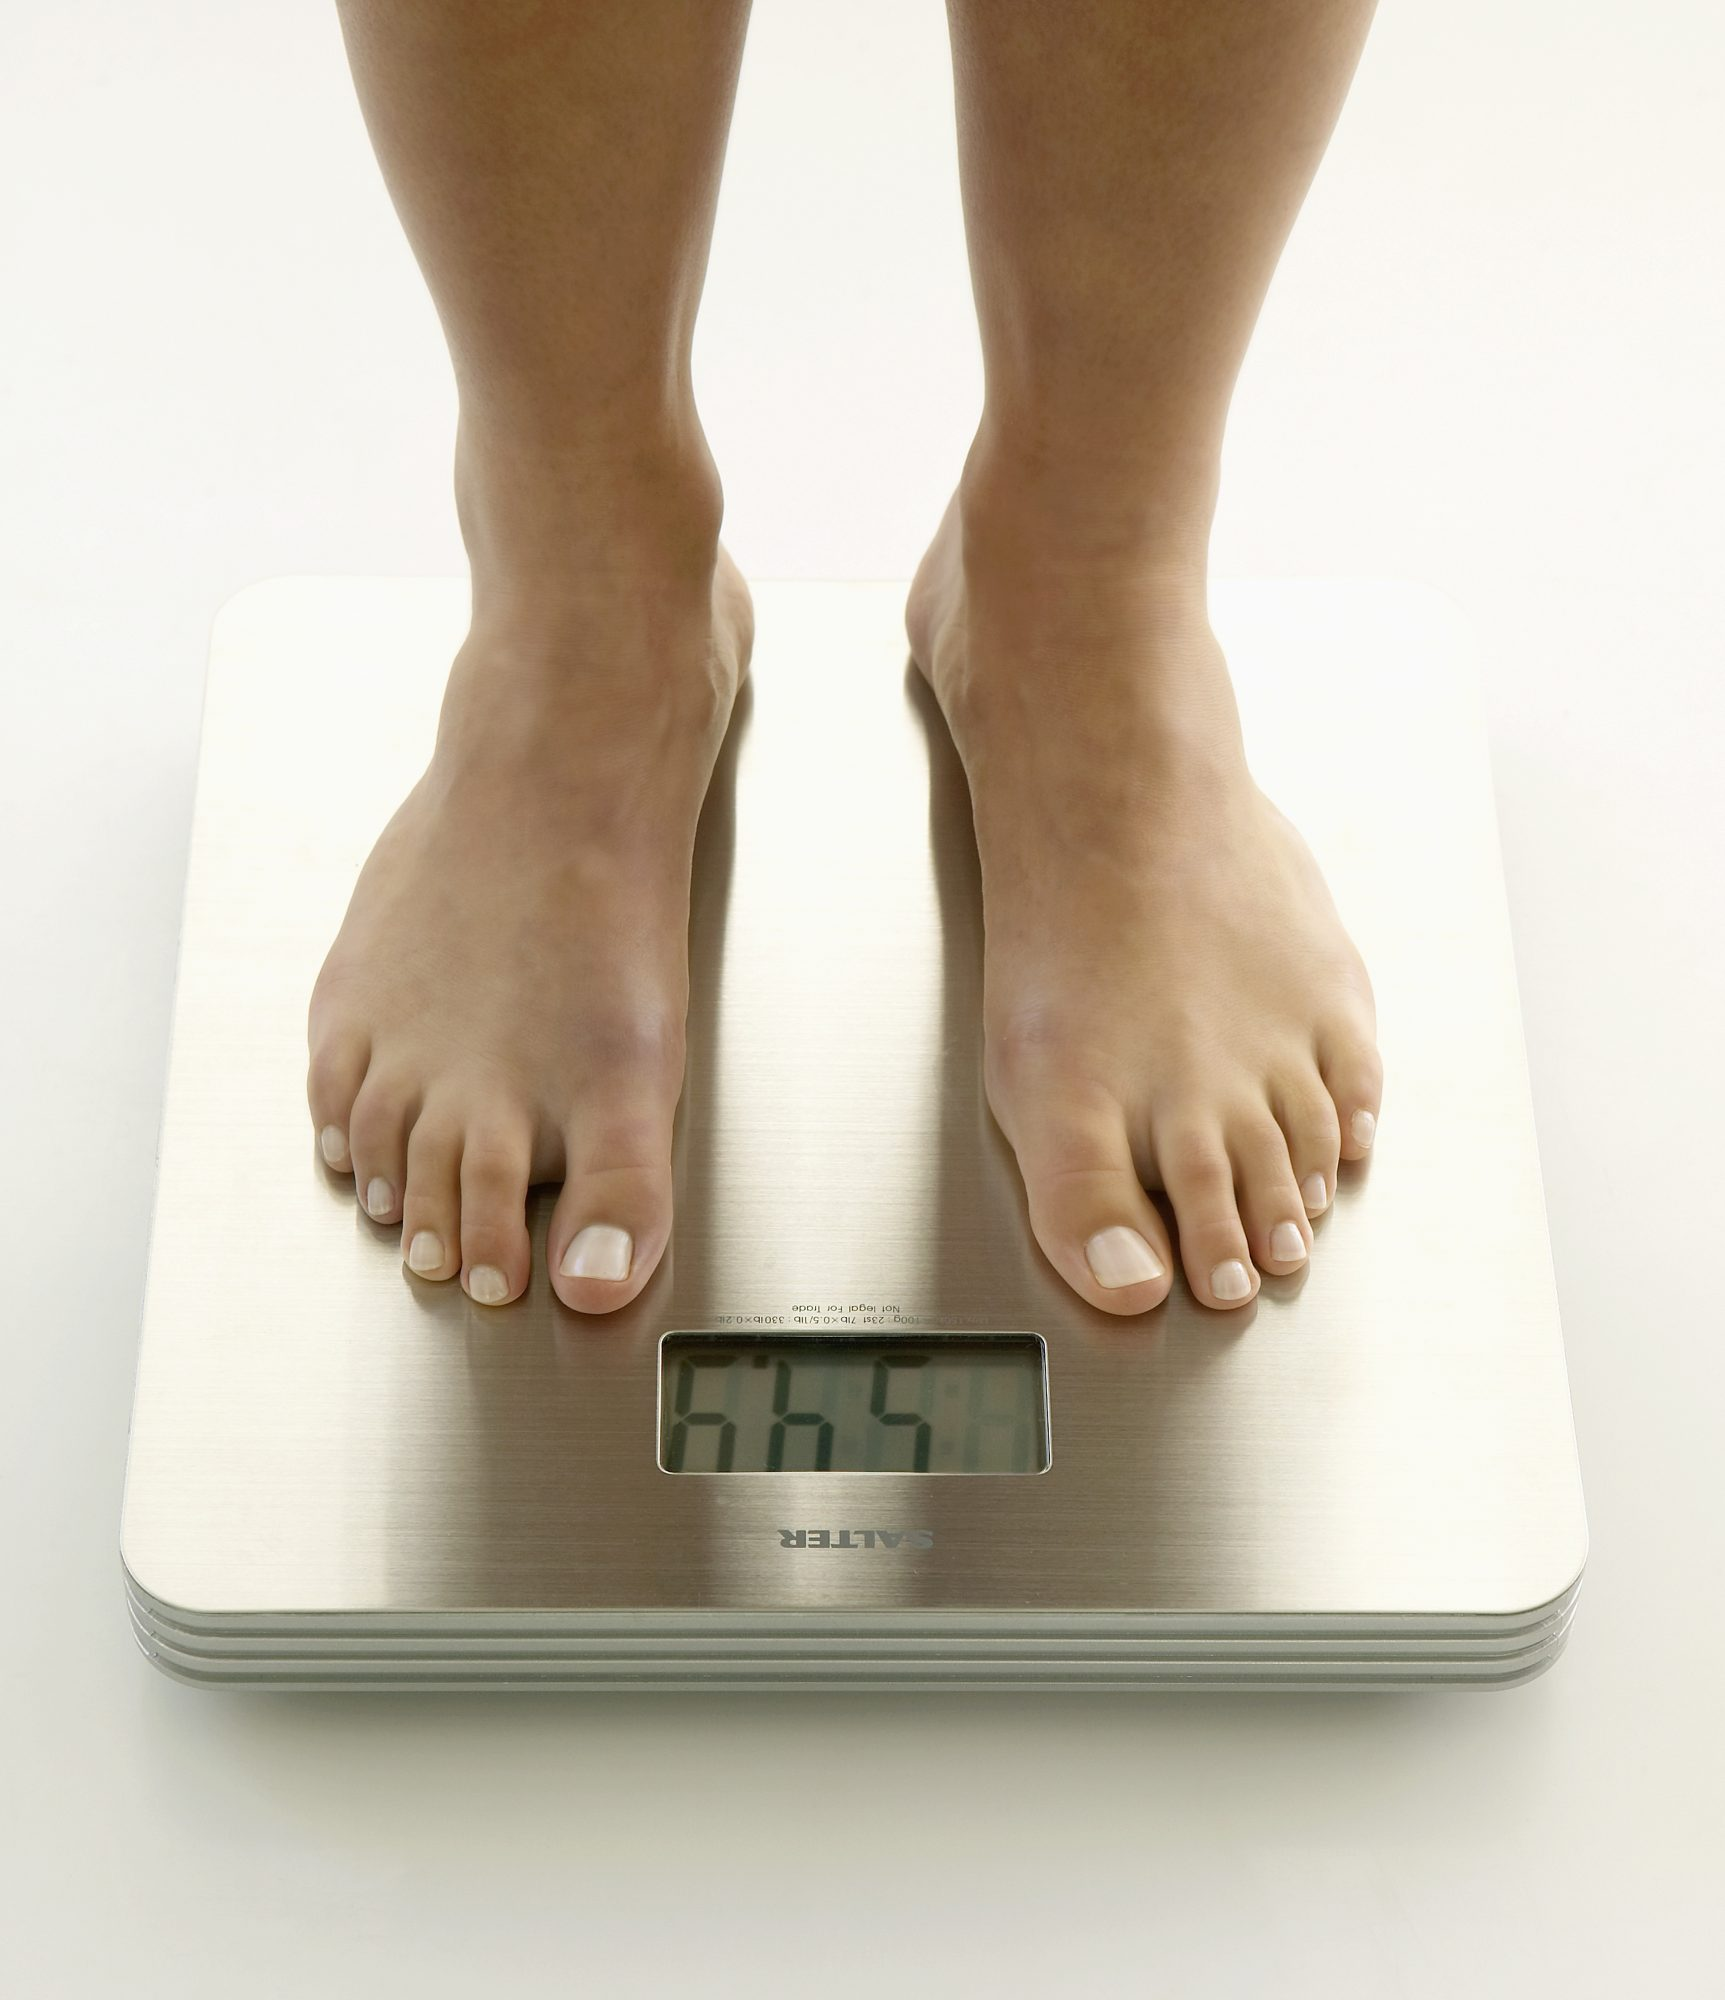 outcome-measurements-weight-scale